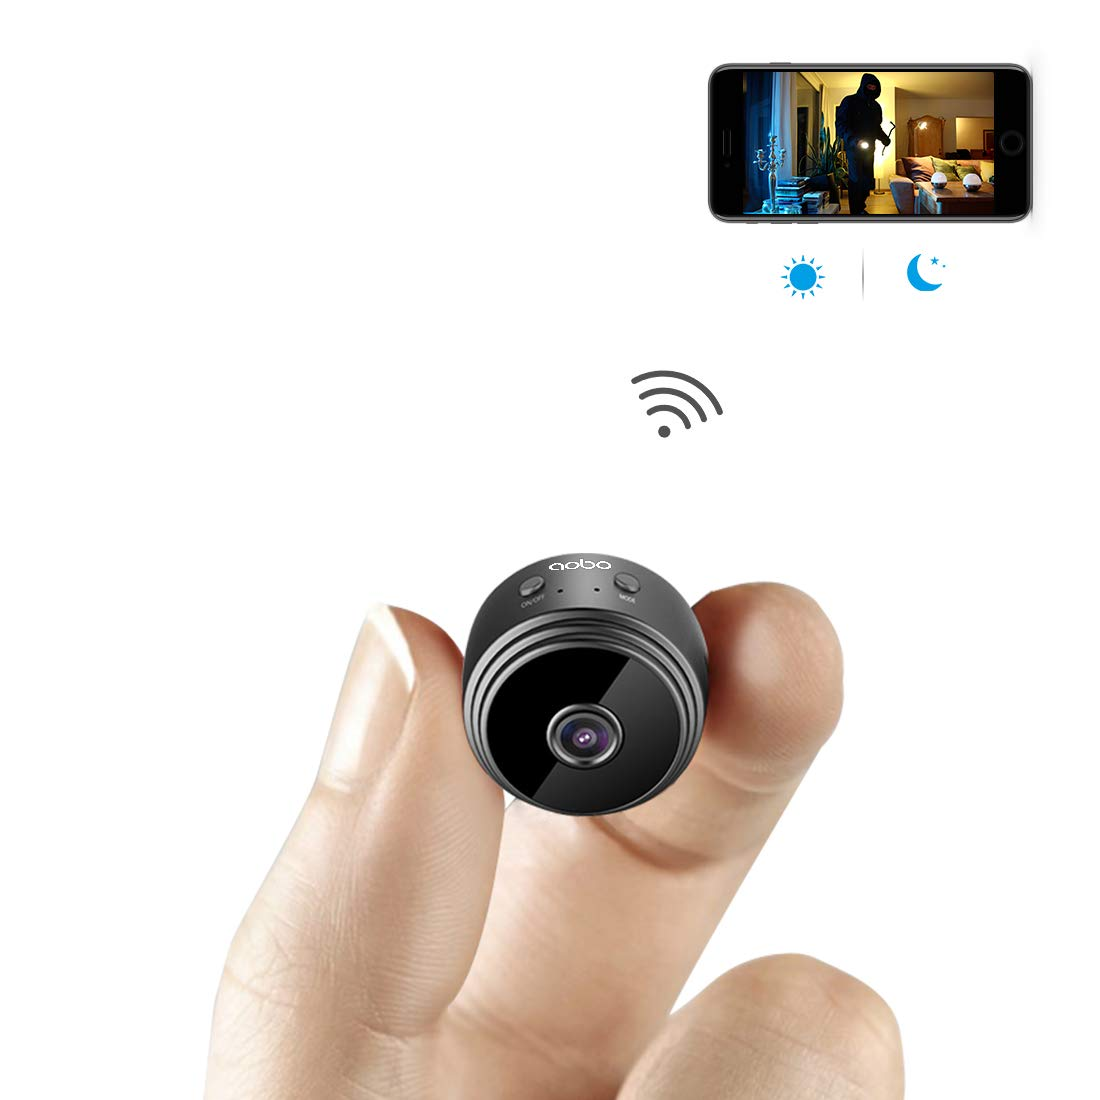 Mini Spy Camera WiFi Hidden Camera AOBO Wireless HD 1080P Indoor Home Small Spy Cam Security Cameras/Nanny Cam Built-in Battery with Motion Detection/Night Vision for iPhone/Android Phone/iPad/PC by aobo